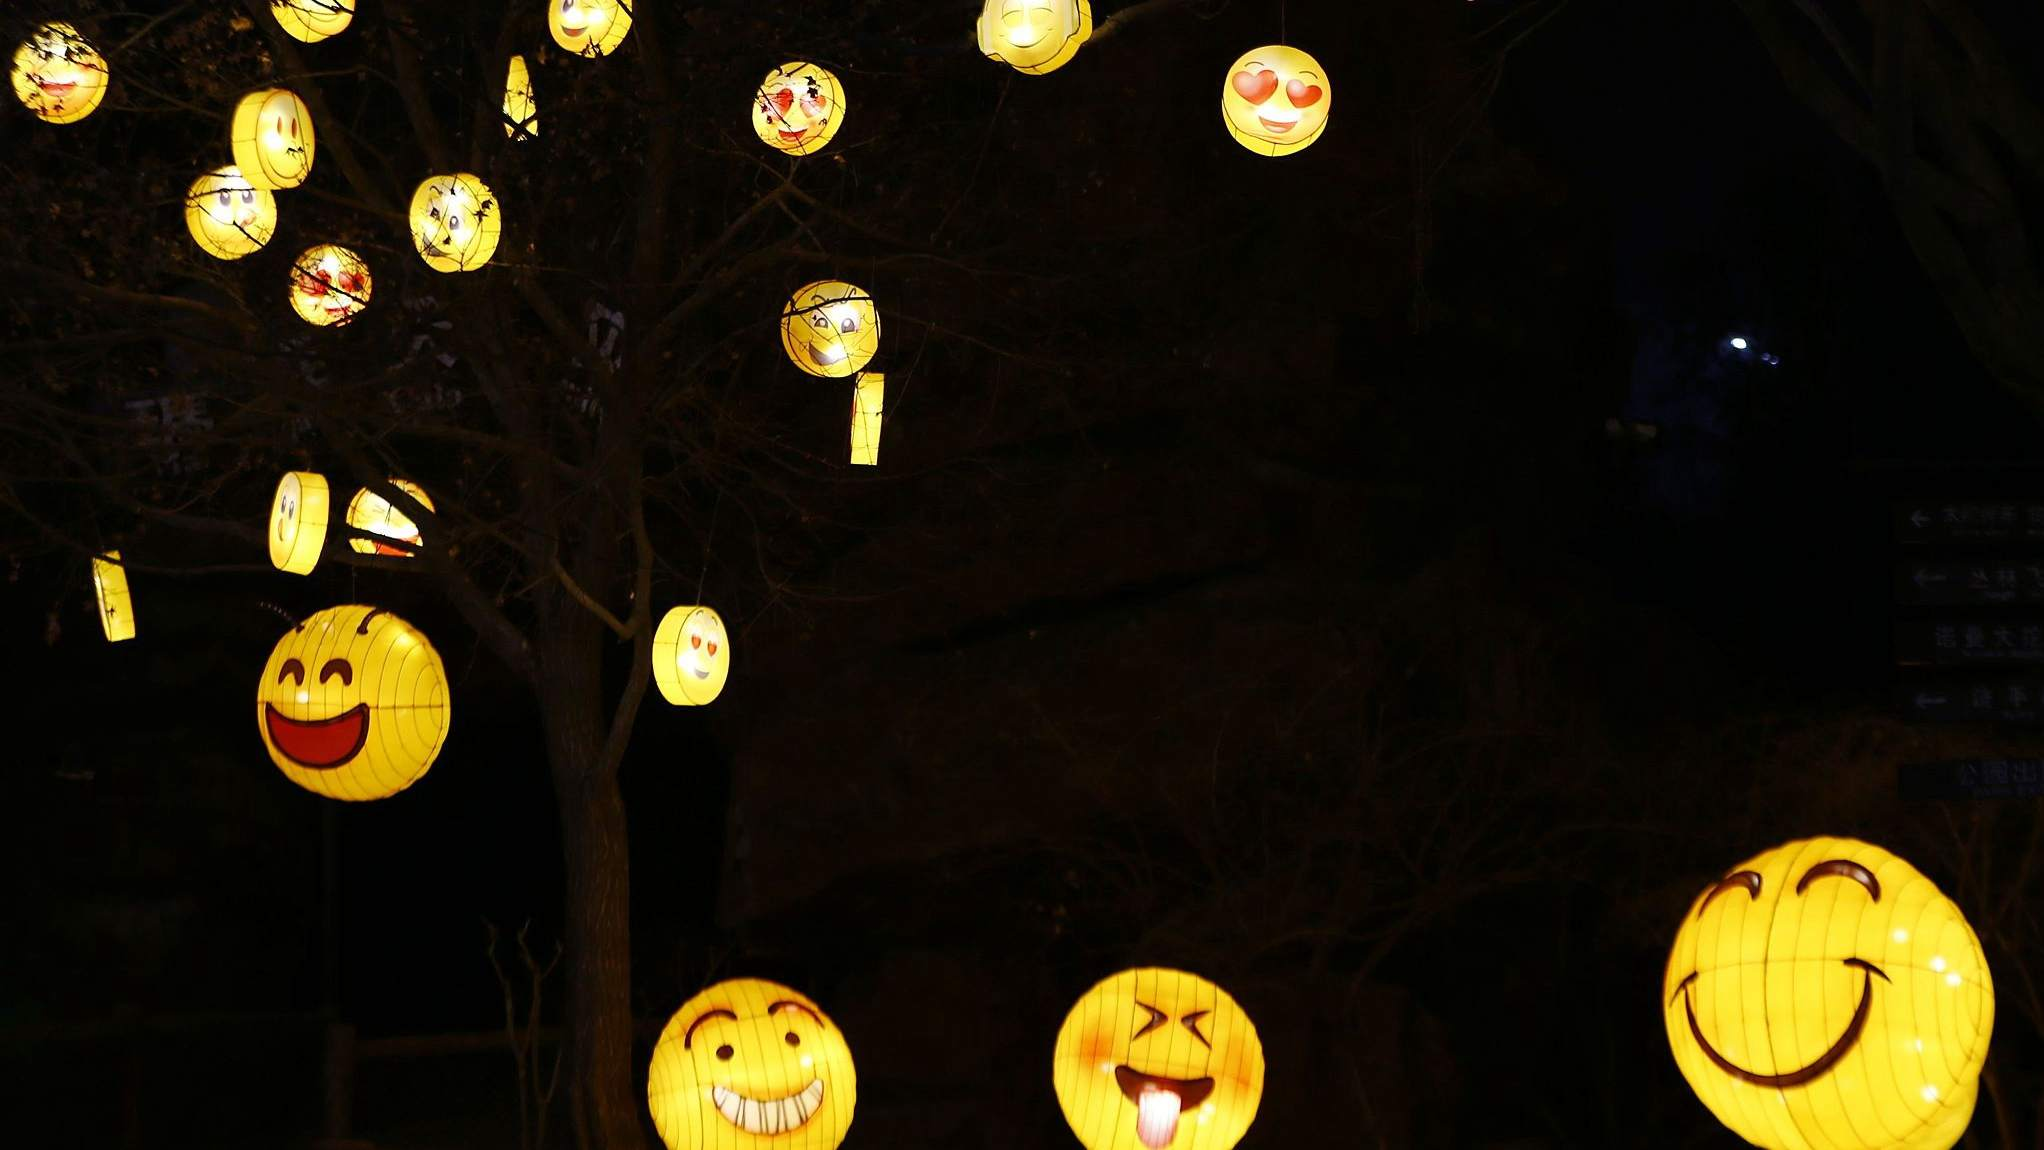 Lantern festivals held across China to greet the new year